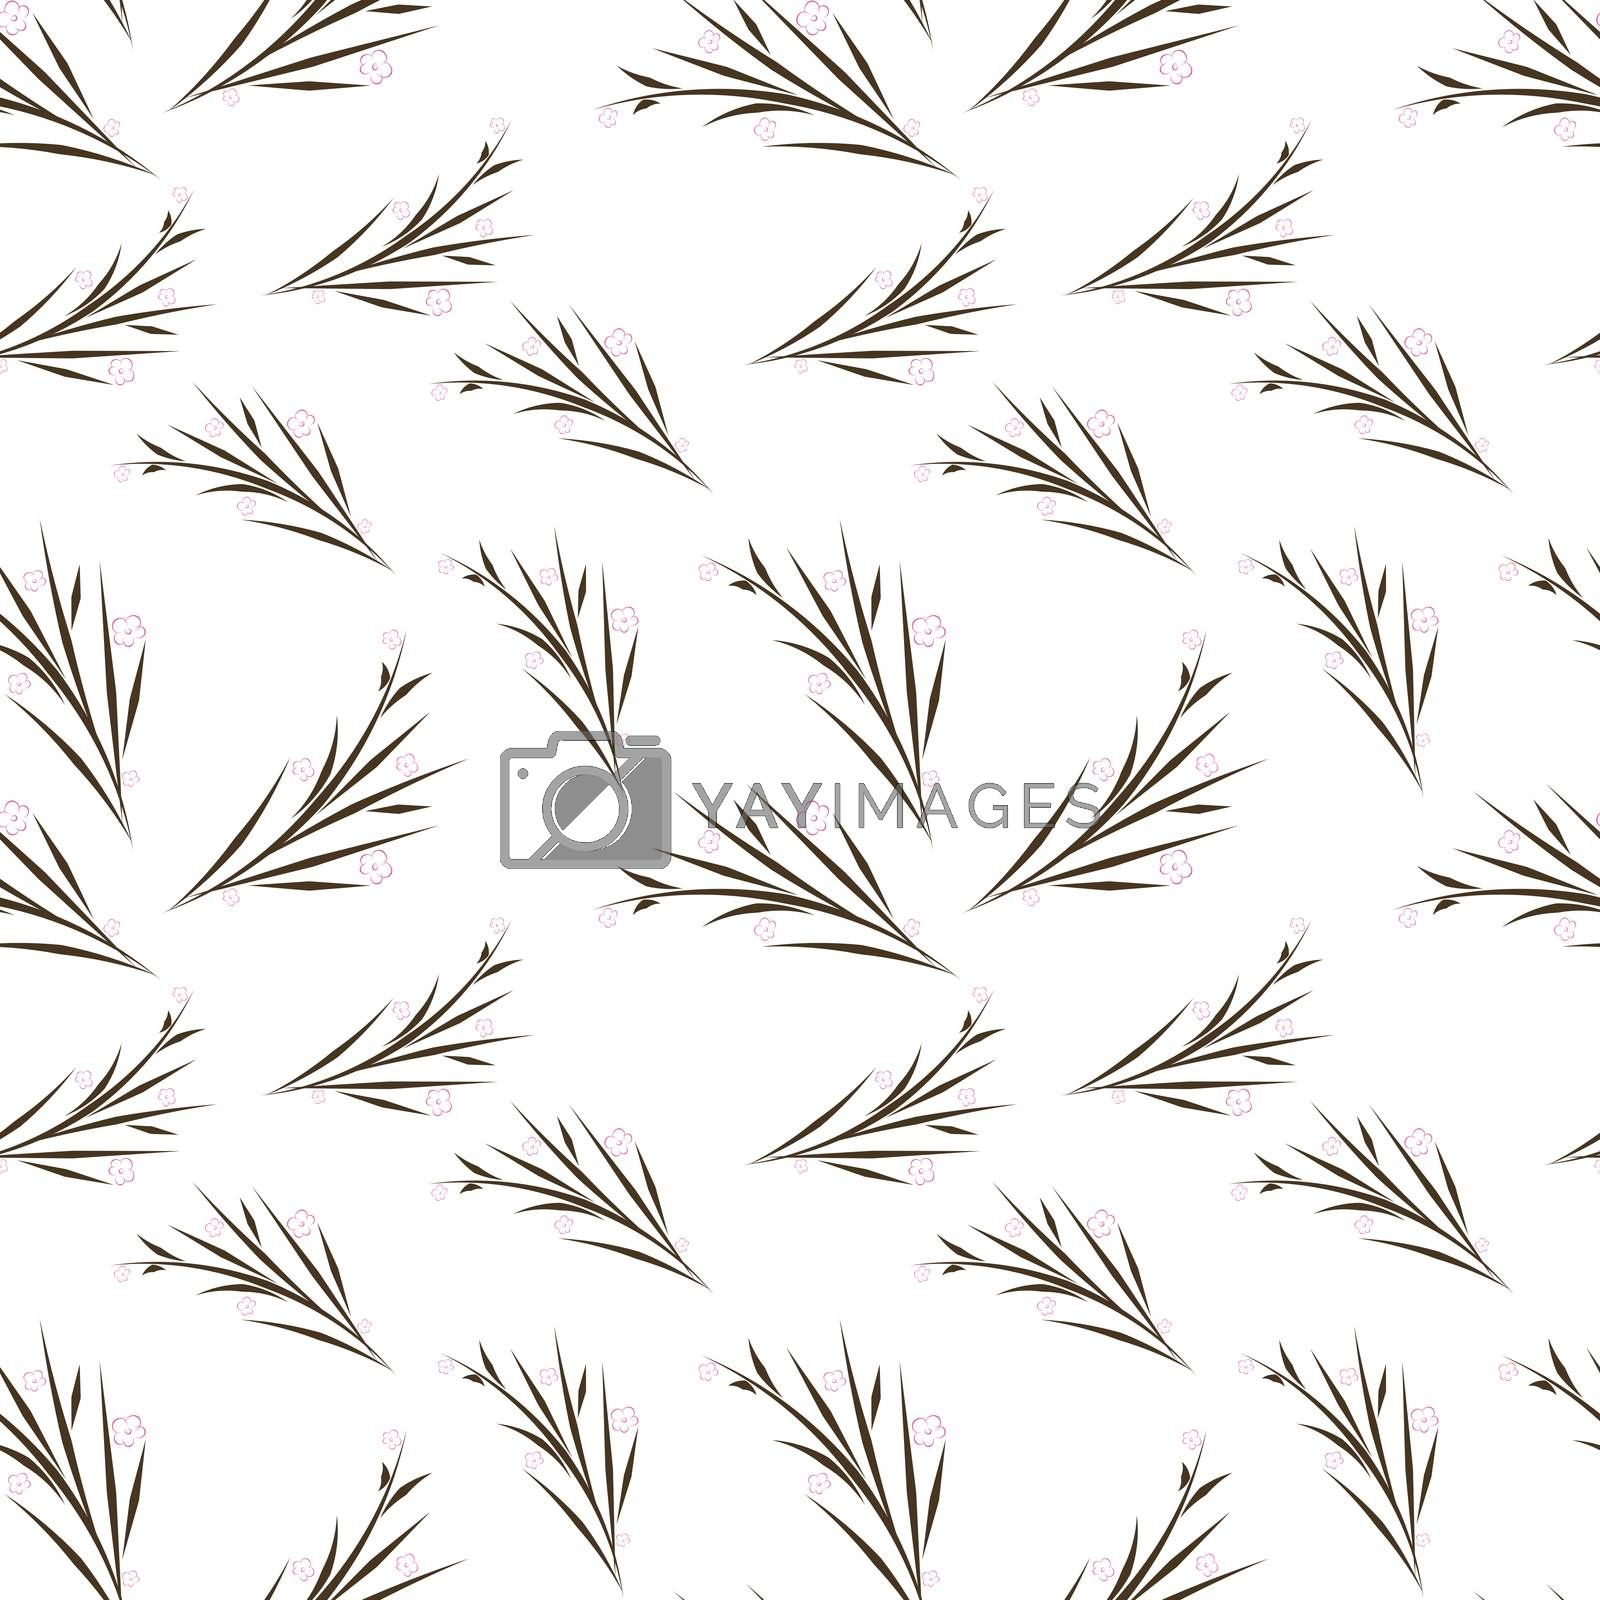 Sakura branch flower stylized white background simple seamless pattern